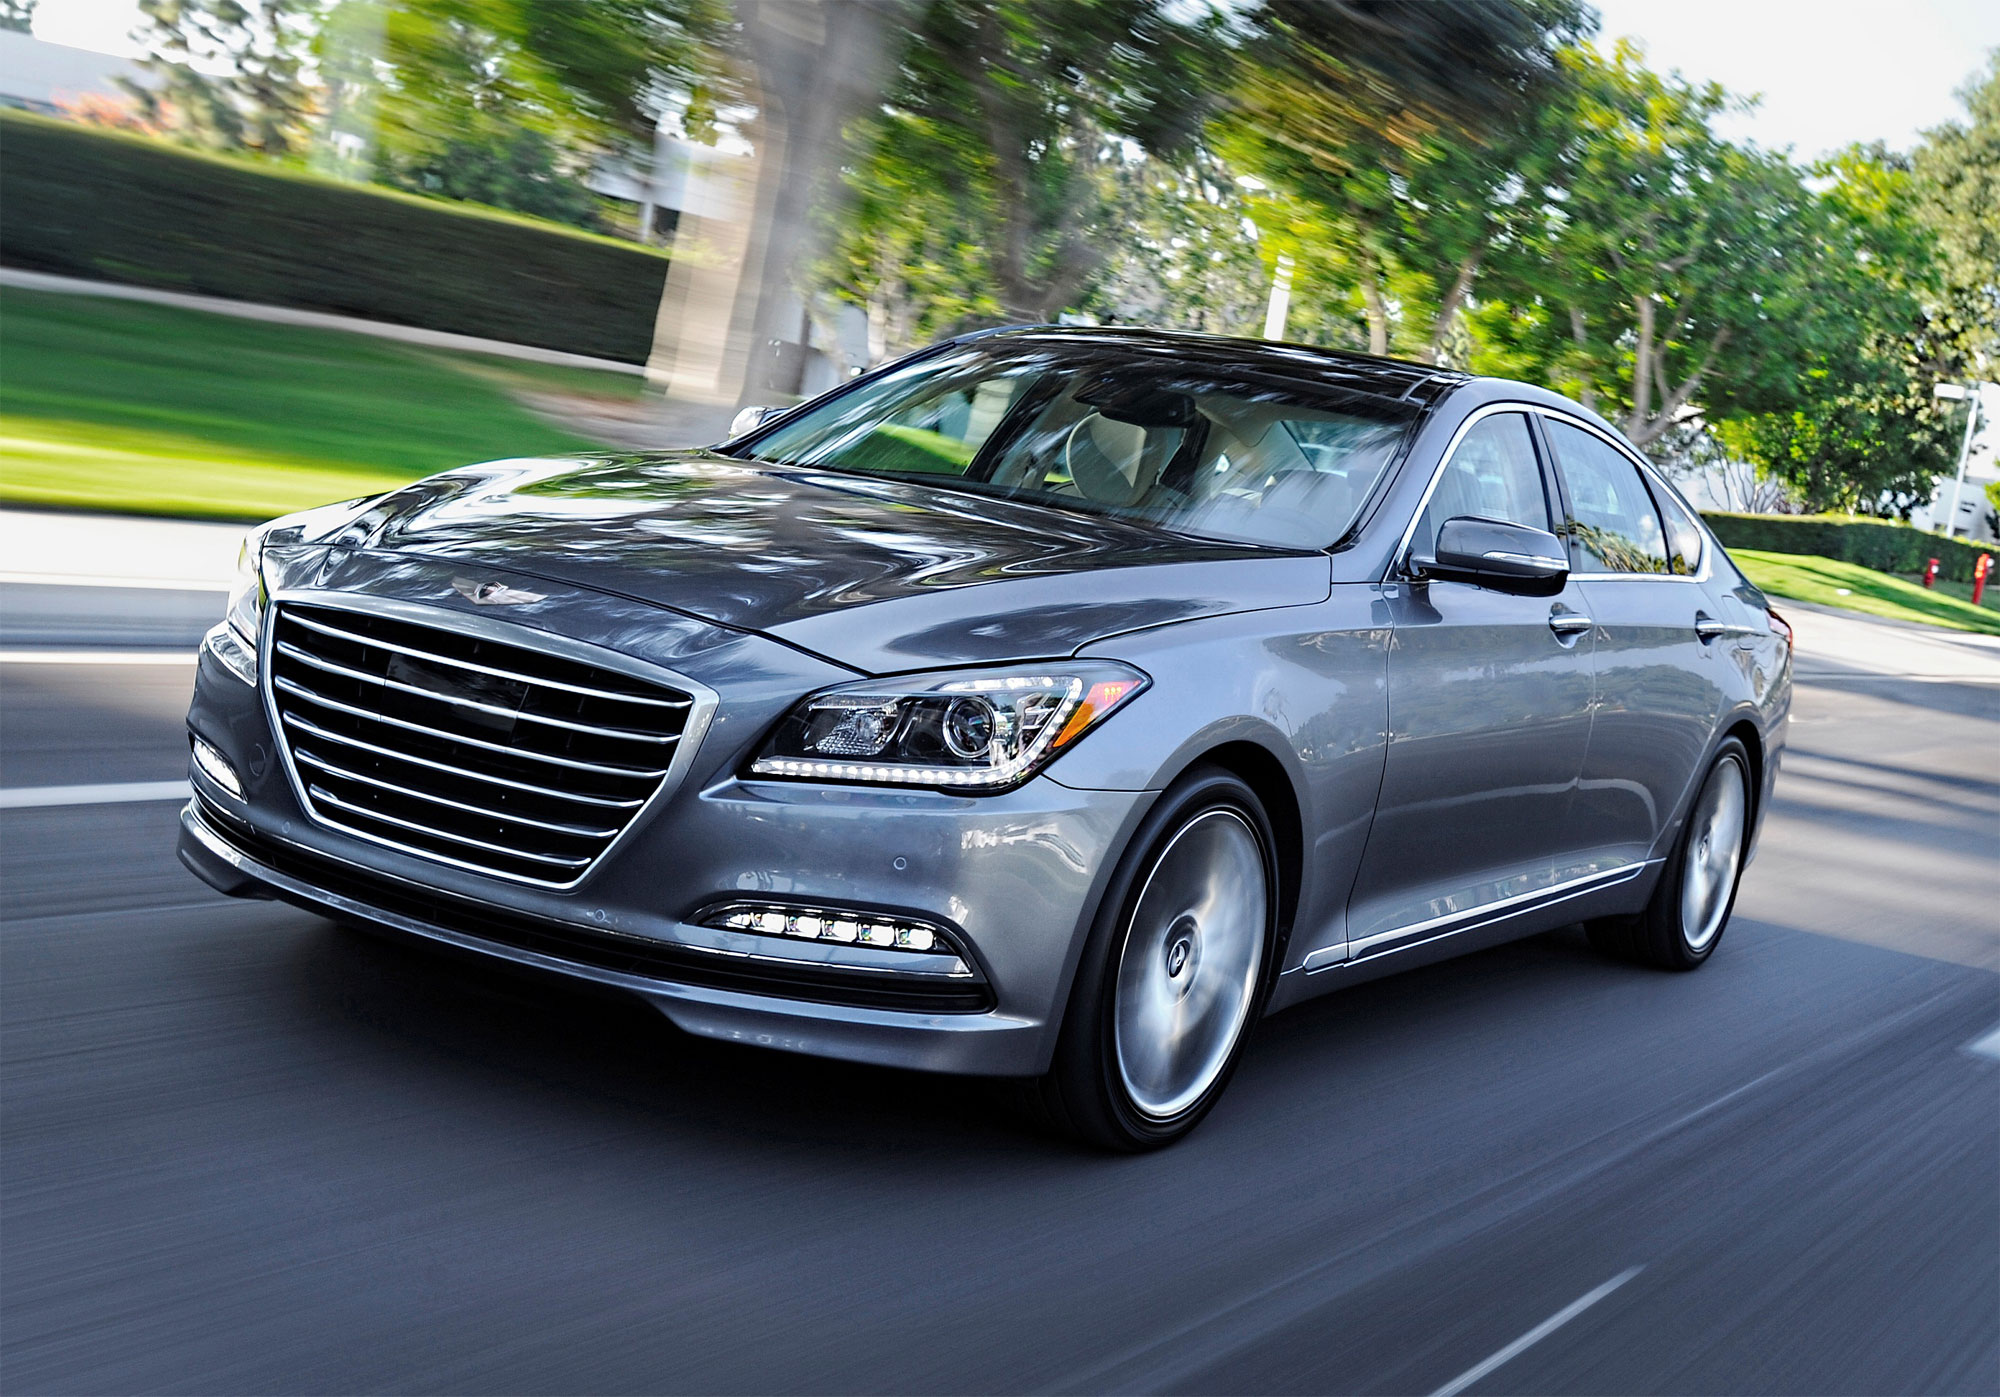 The 2016 Hyundai Genesis